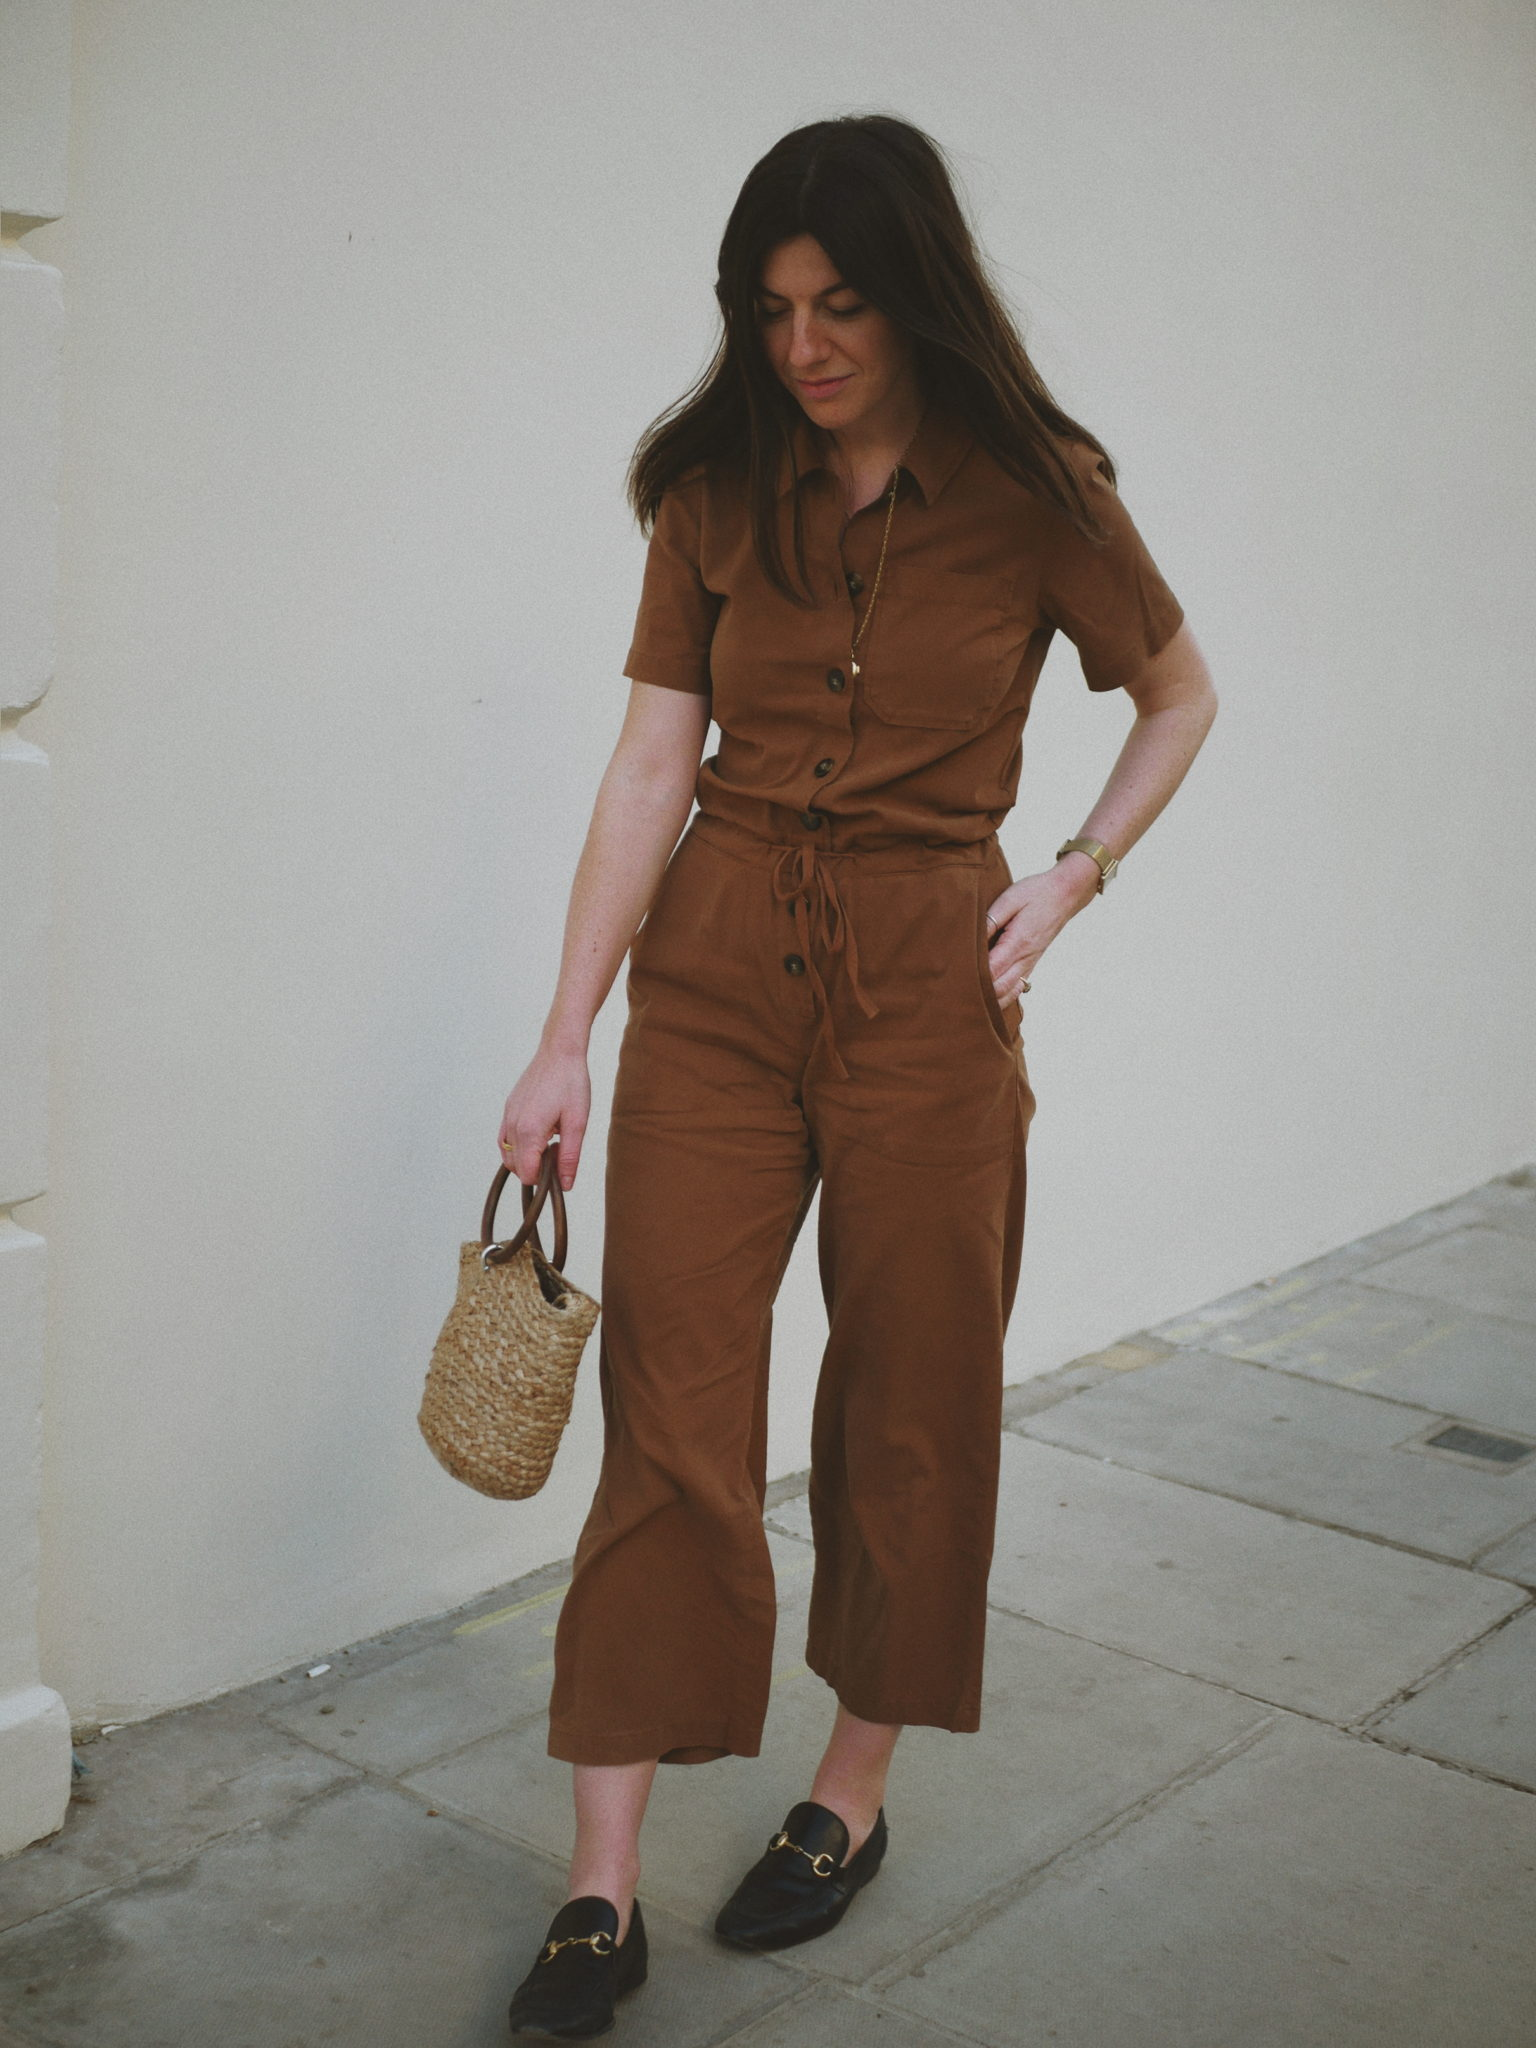 "Jumpsuit: <a href= ""https://rstyle.me/+fpDQL0D8AKL6g8qnOE0_zw""><u>Sezane</u></a><br/> Bag: Zara (last season)<br/> Shoes: <a href=""https://rstyle.me/+WcF74VuppcPaRfx3buclug""><u>Gucci (men's)</u></a><br/>"